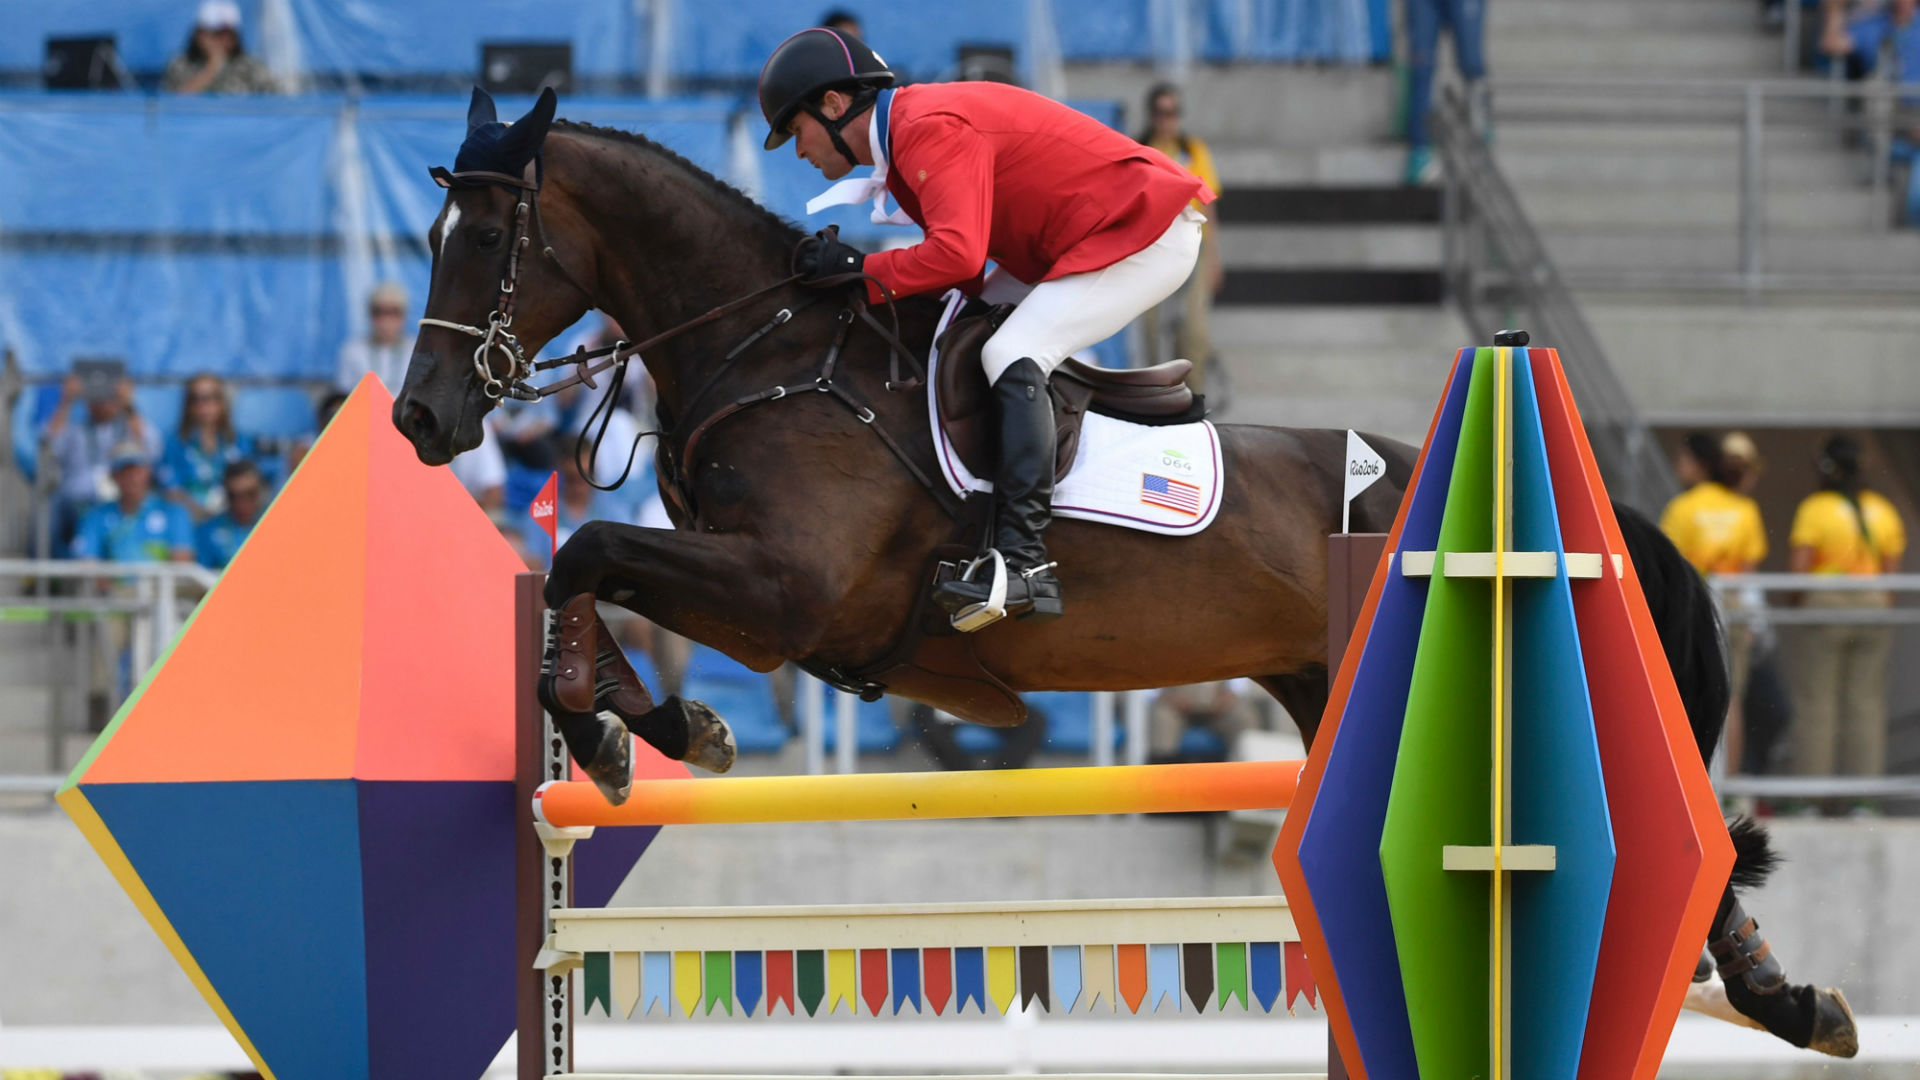 Olympics: USA's Dutton Wins Individual Eventing Bronze